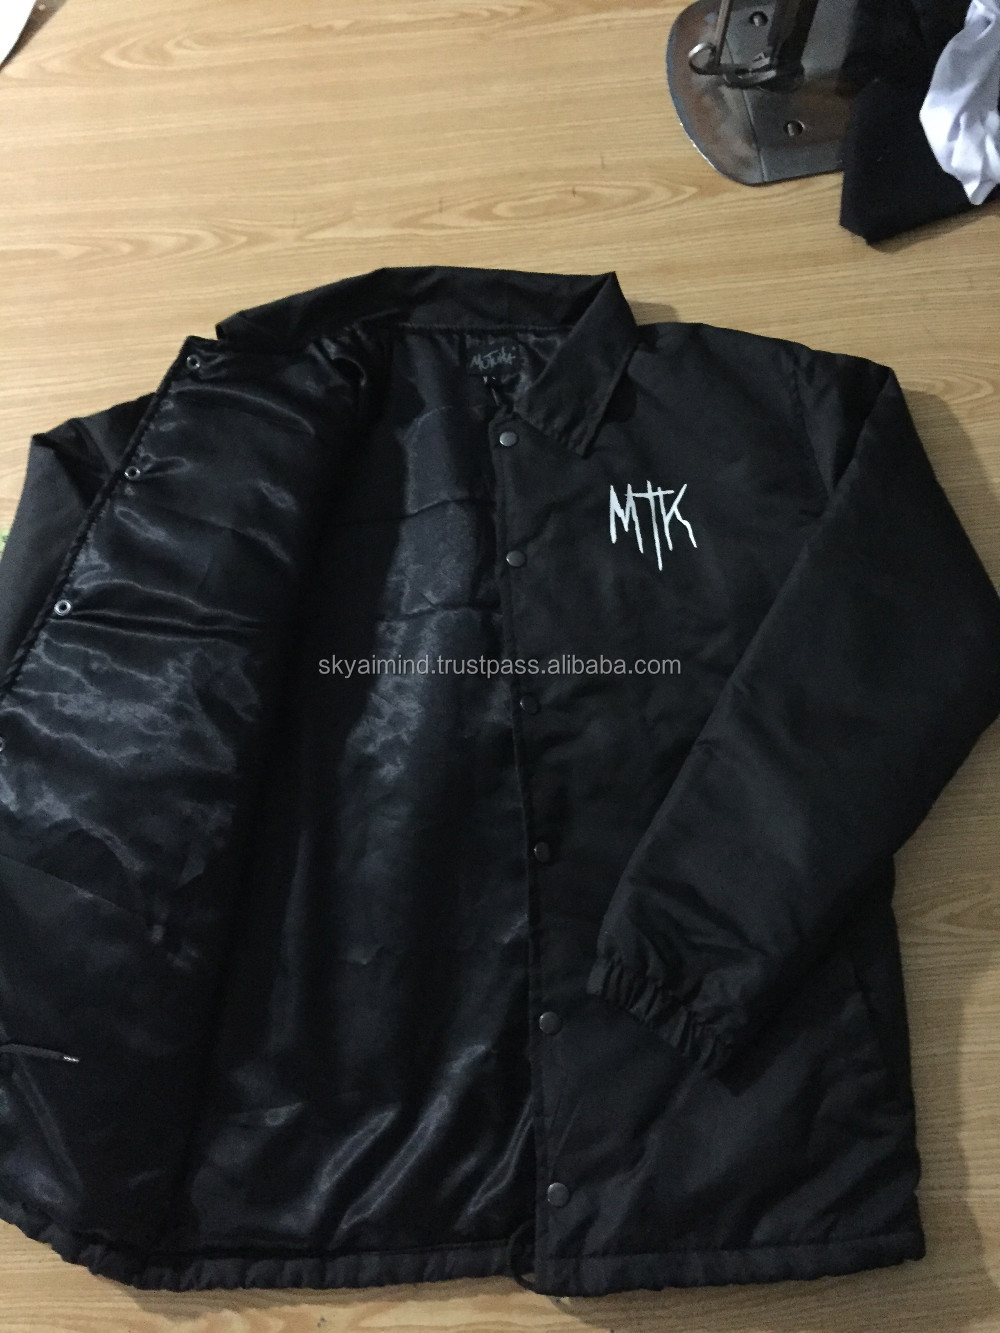 custom made high quality coaches jackets,fashionwear made nylon material coaches jackets,all colours printed coaches jackets